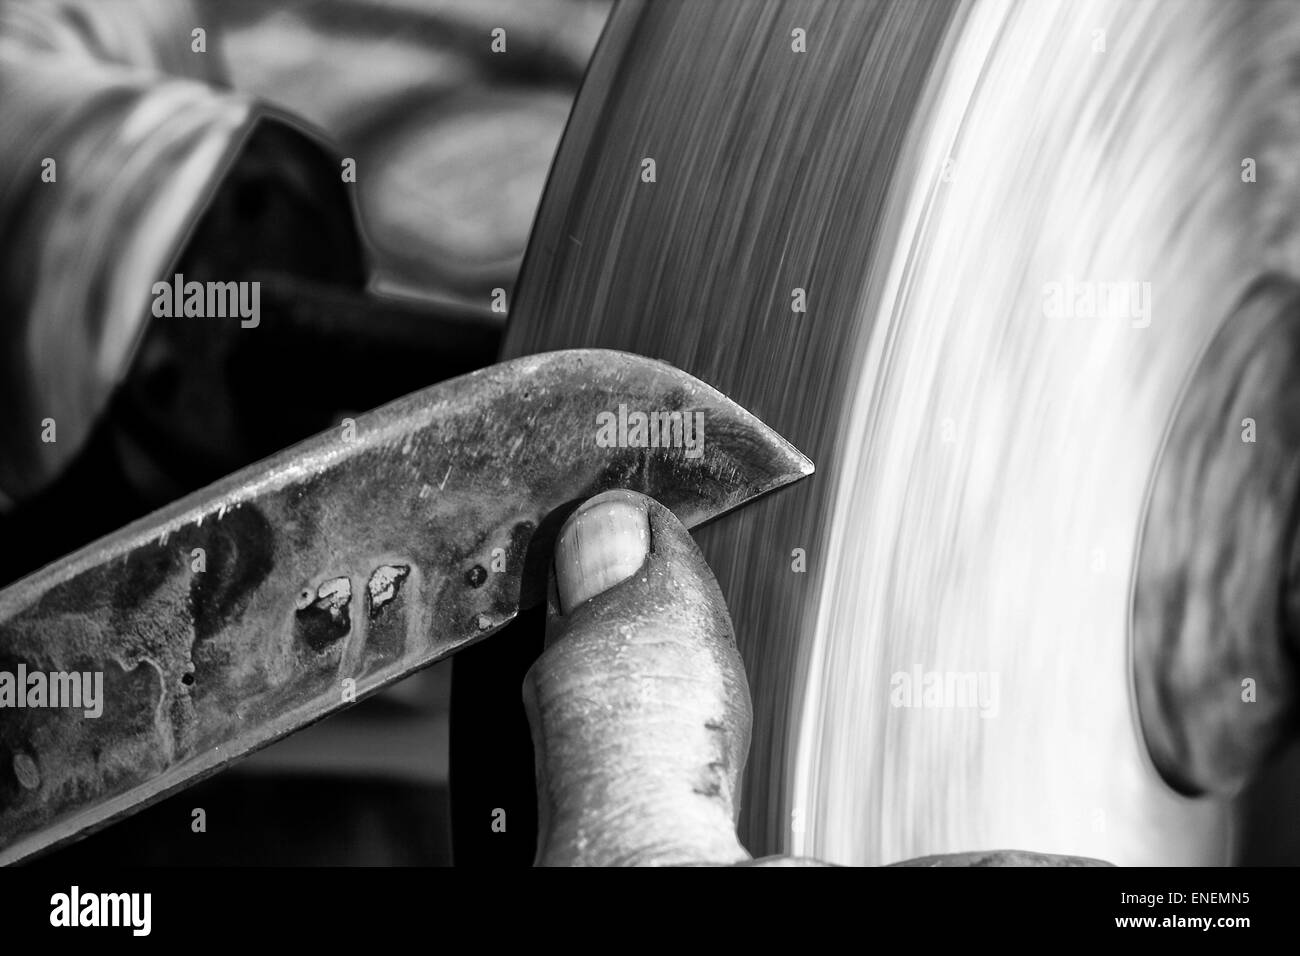 Sharpening a knife blade on a wet sandstone grinding wheel - Stock Image